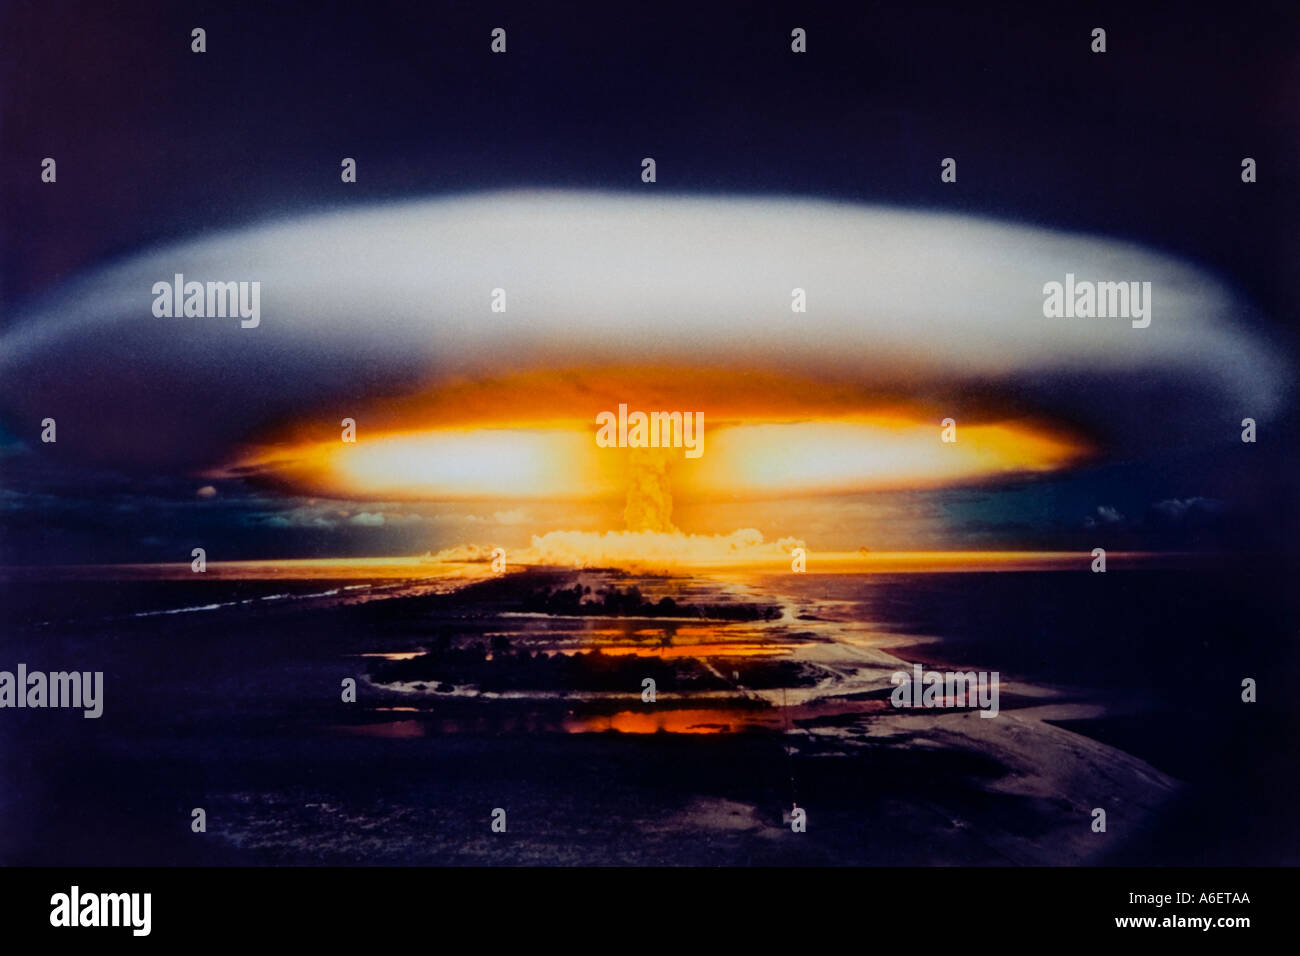 Crown of a nuclear bomb explosion over Mururoa atoll, French Polynesia, Pacific Ocean - Stock Image